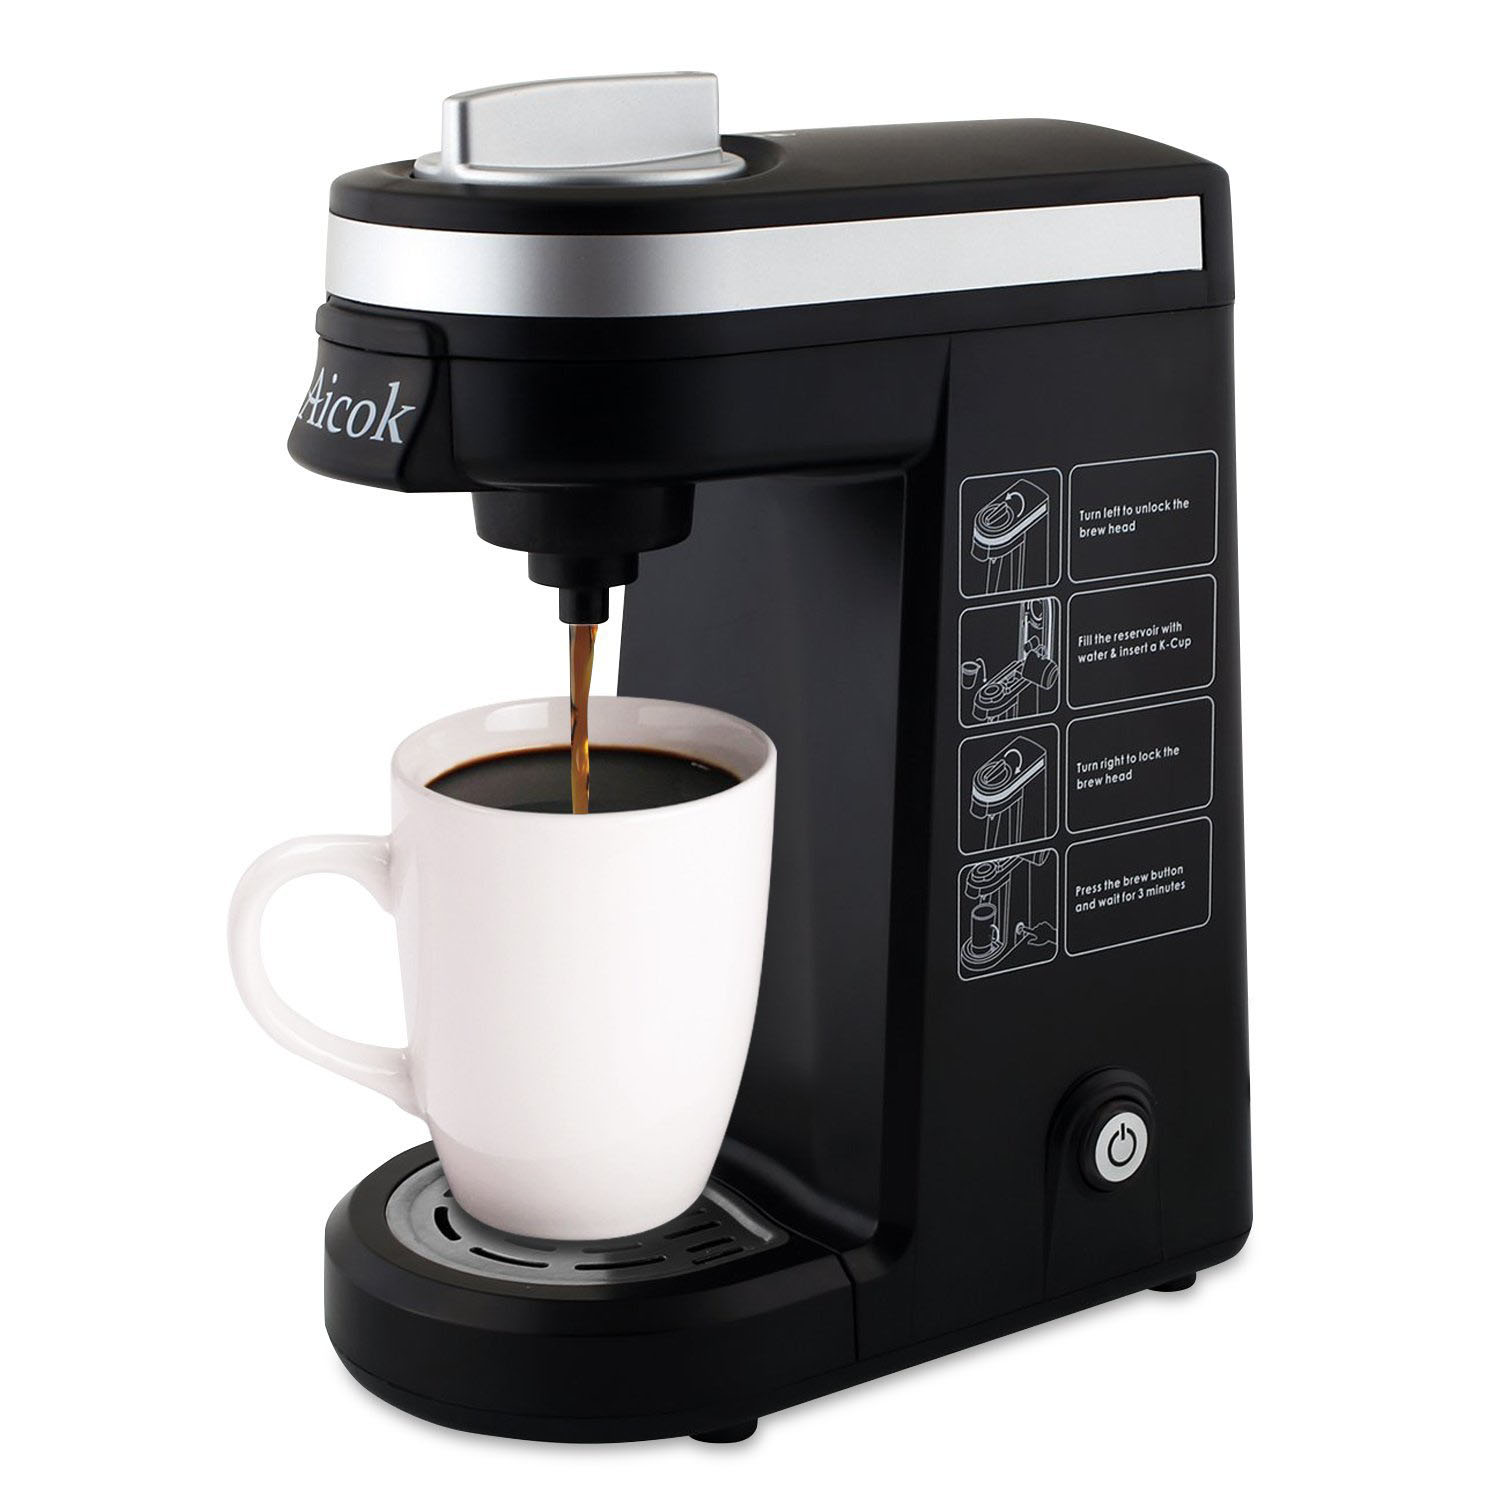 Coffee Machine Deals Deal Of The Day 54 Off Aicok Single Serve K Cup Coffee Maker